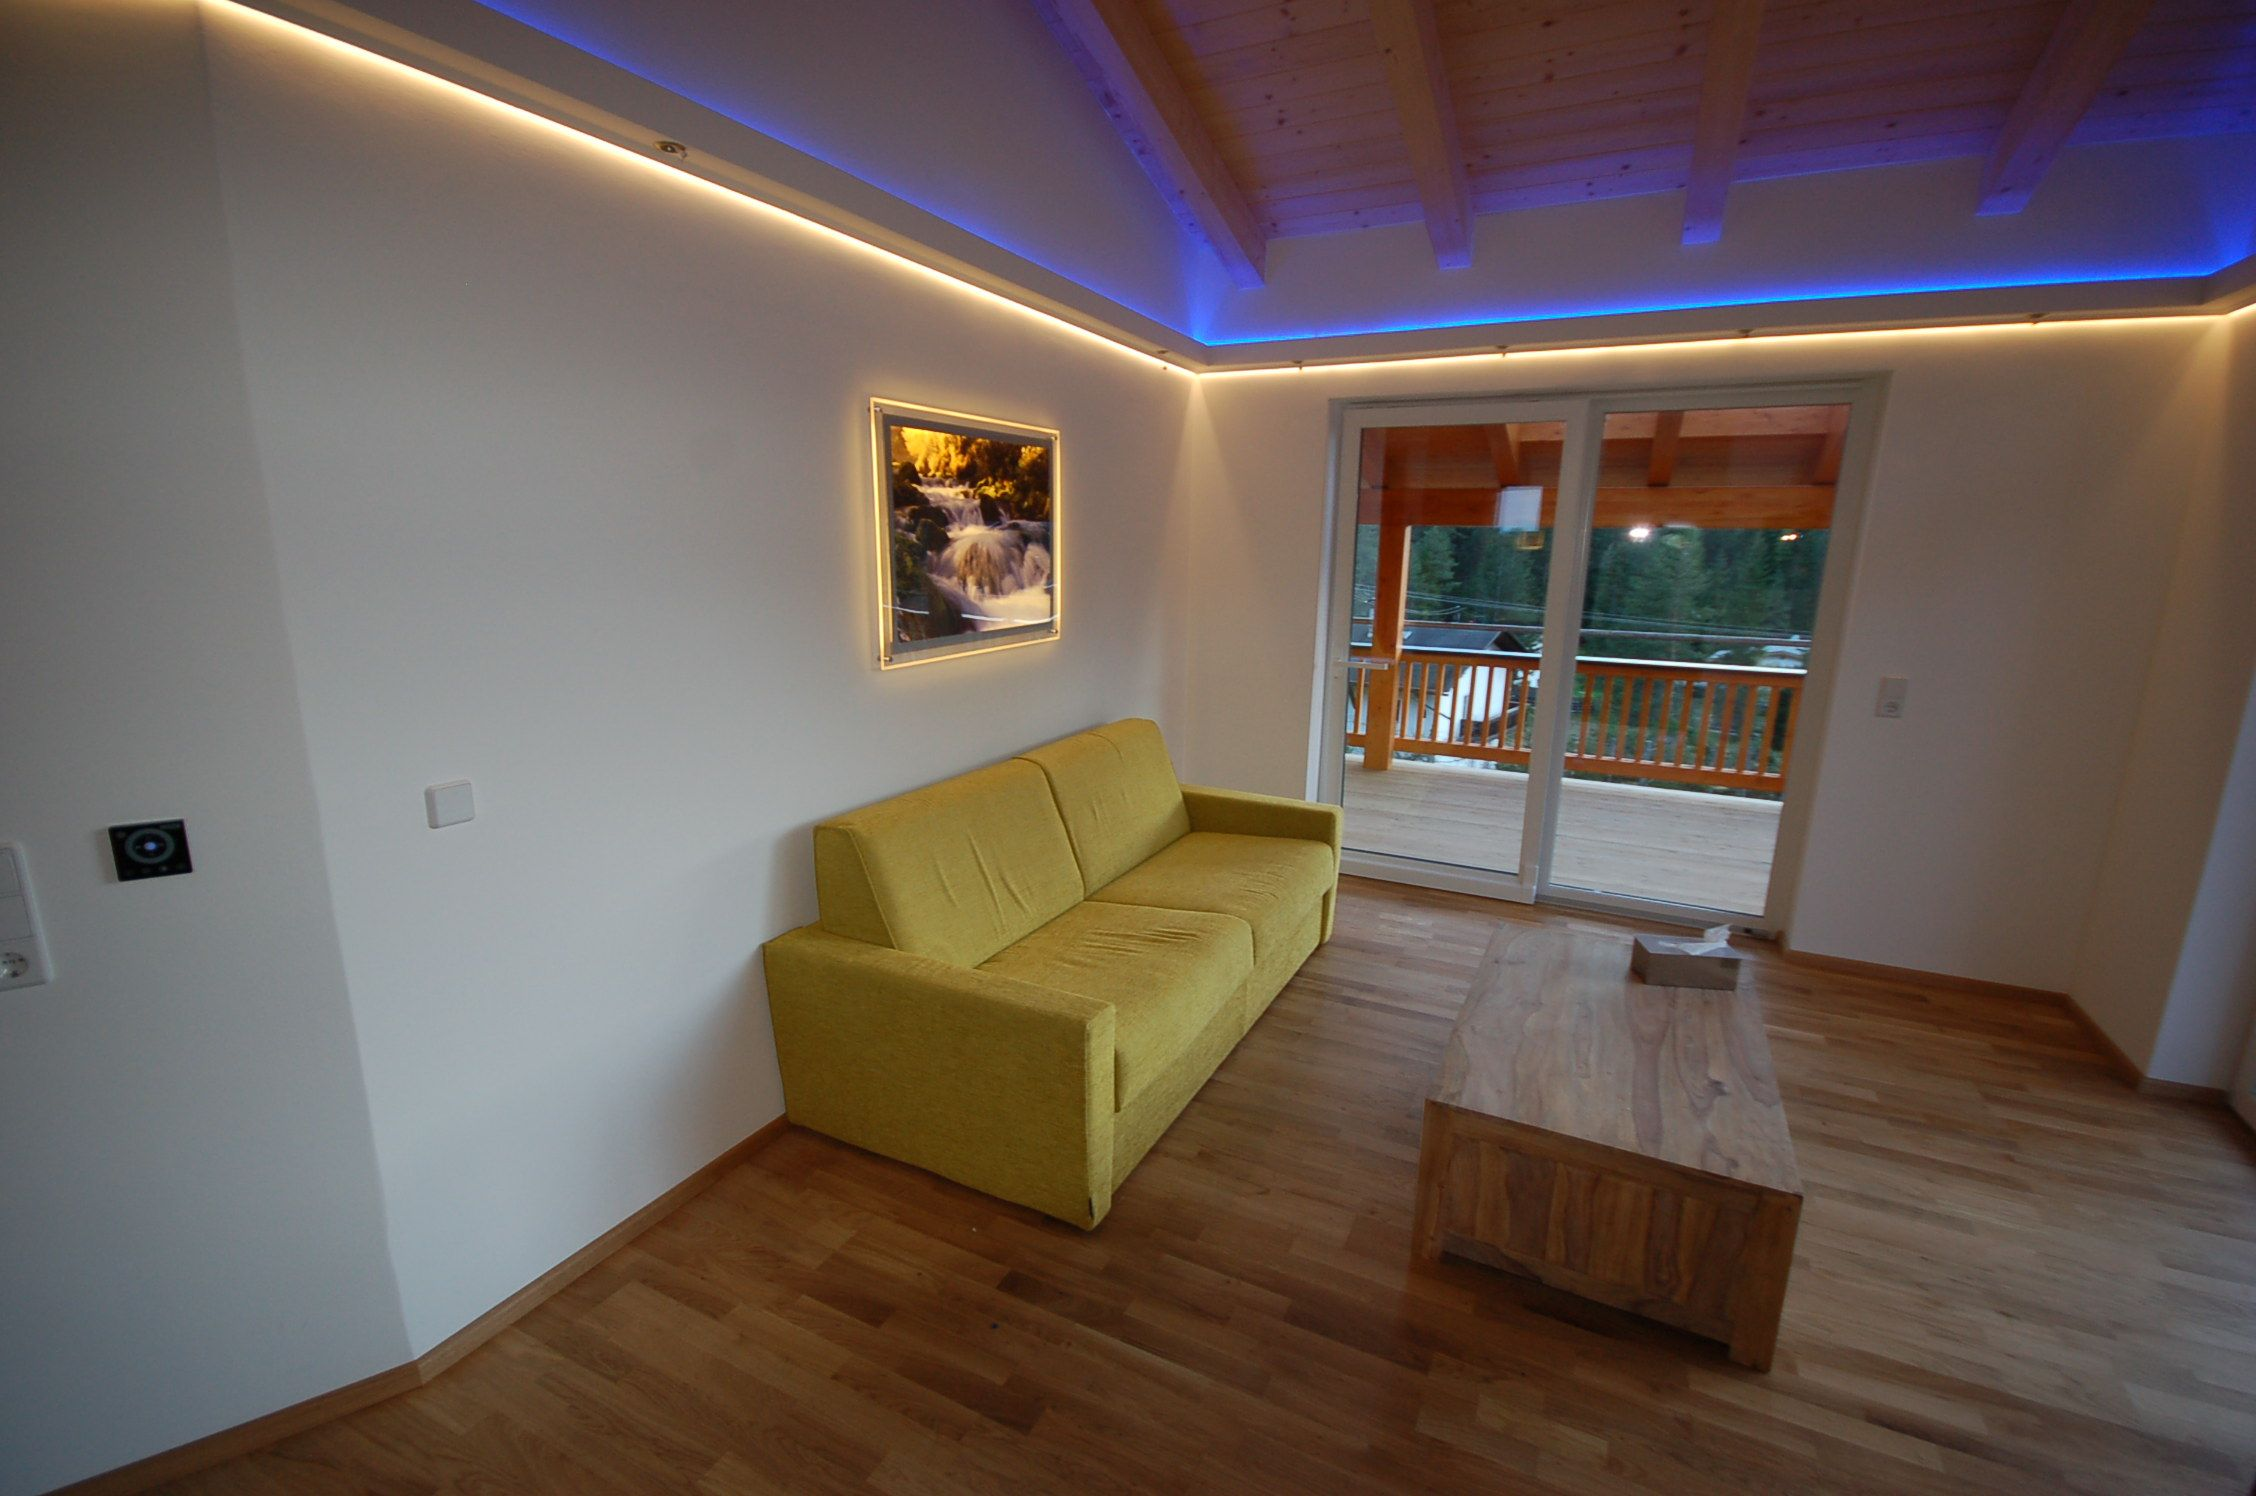 LED Wand Profiel / LED Wall Profile http://www.led-verlichting.org ...